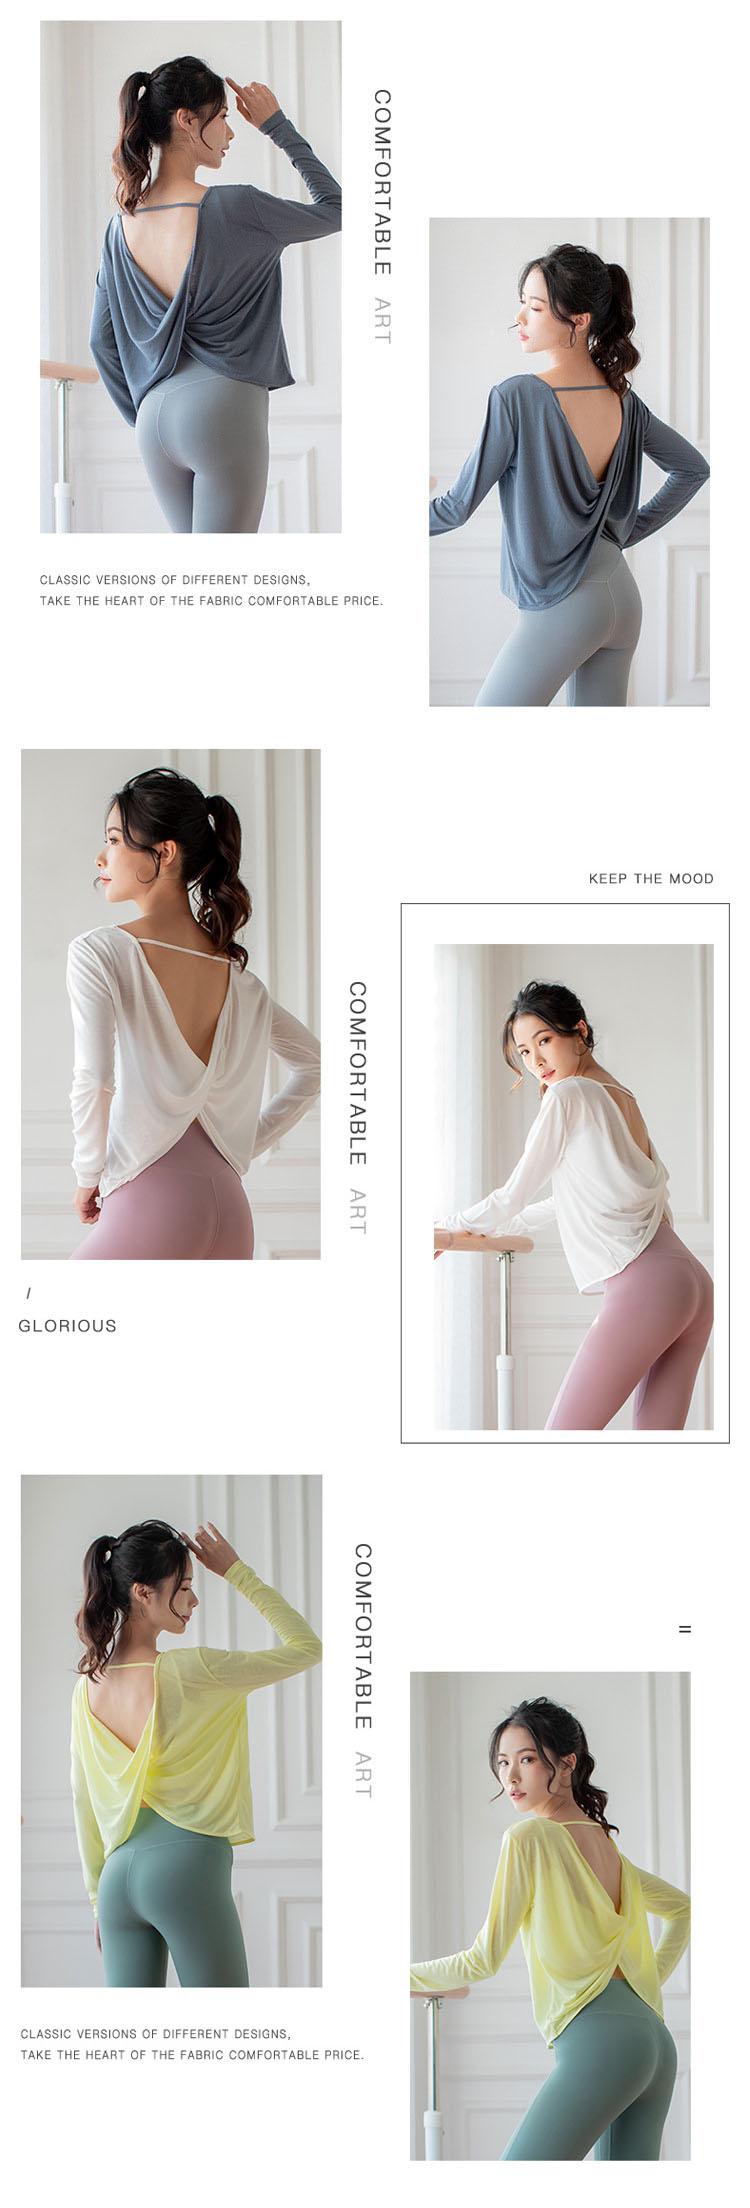 Open back design, showing a sexy figure.